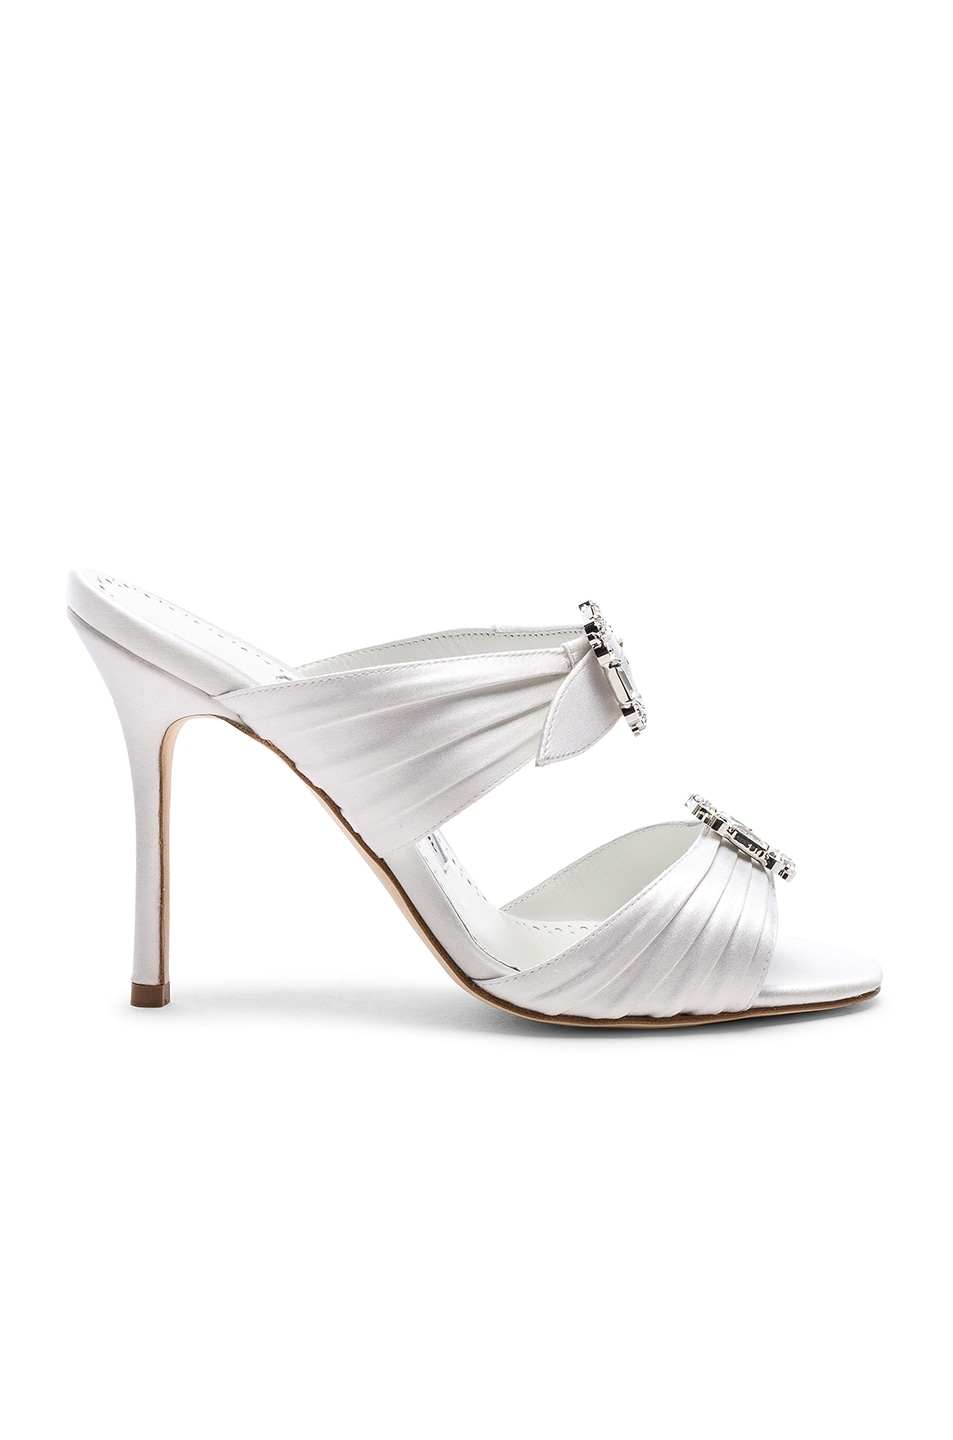 Image 1 of Manolo Blahnik Satin Pow 105 Sandals in White